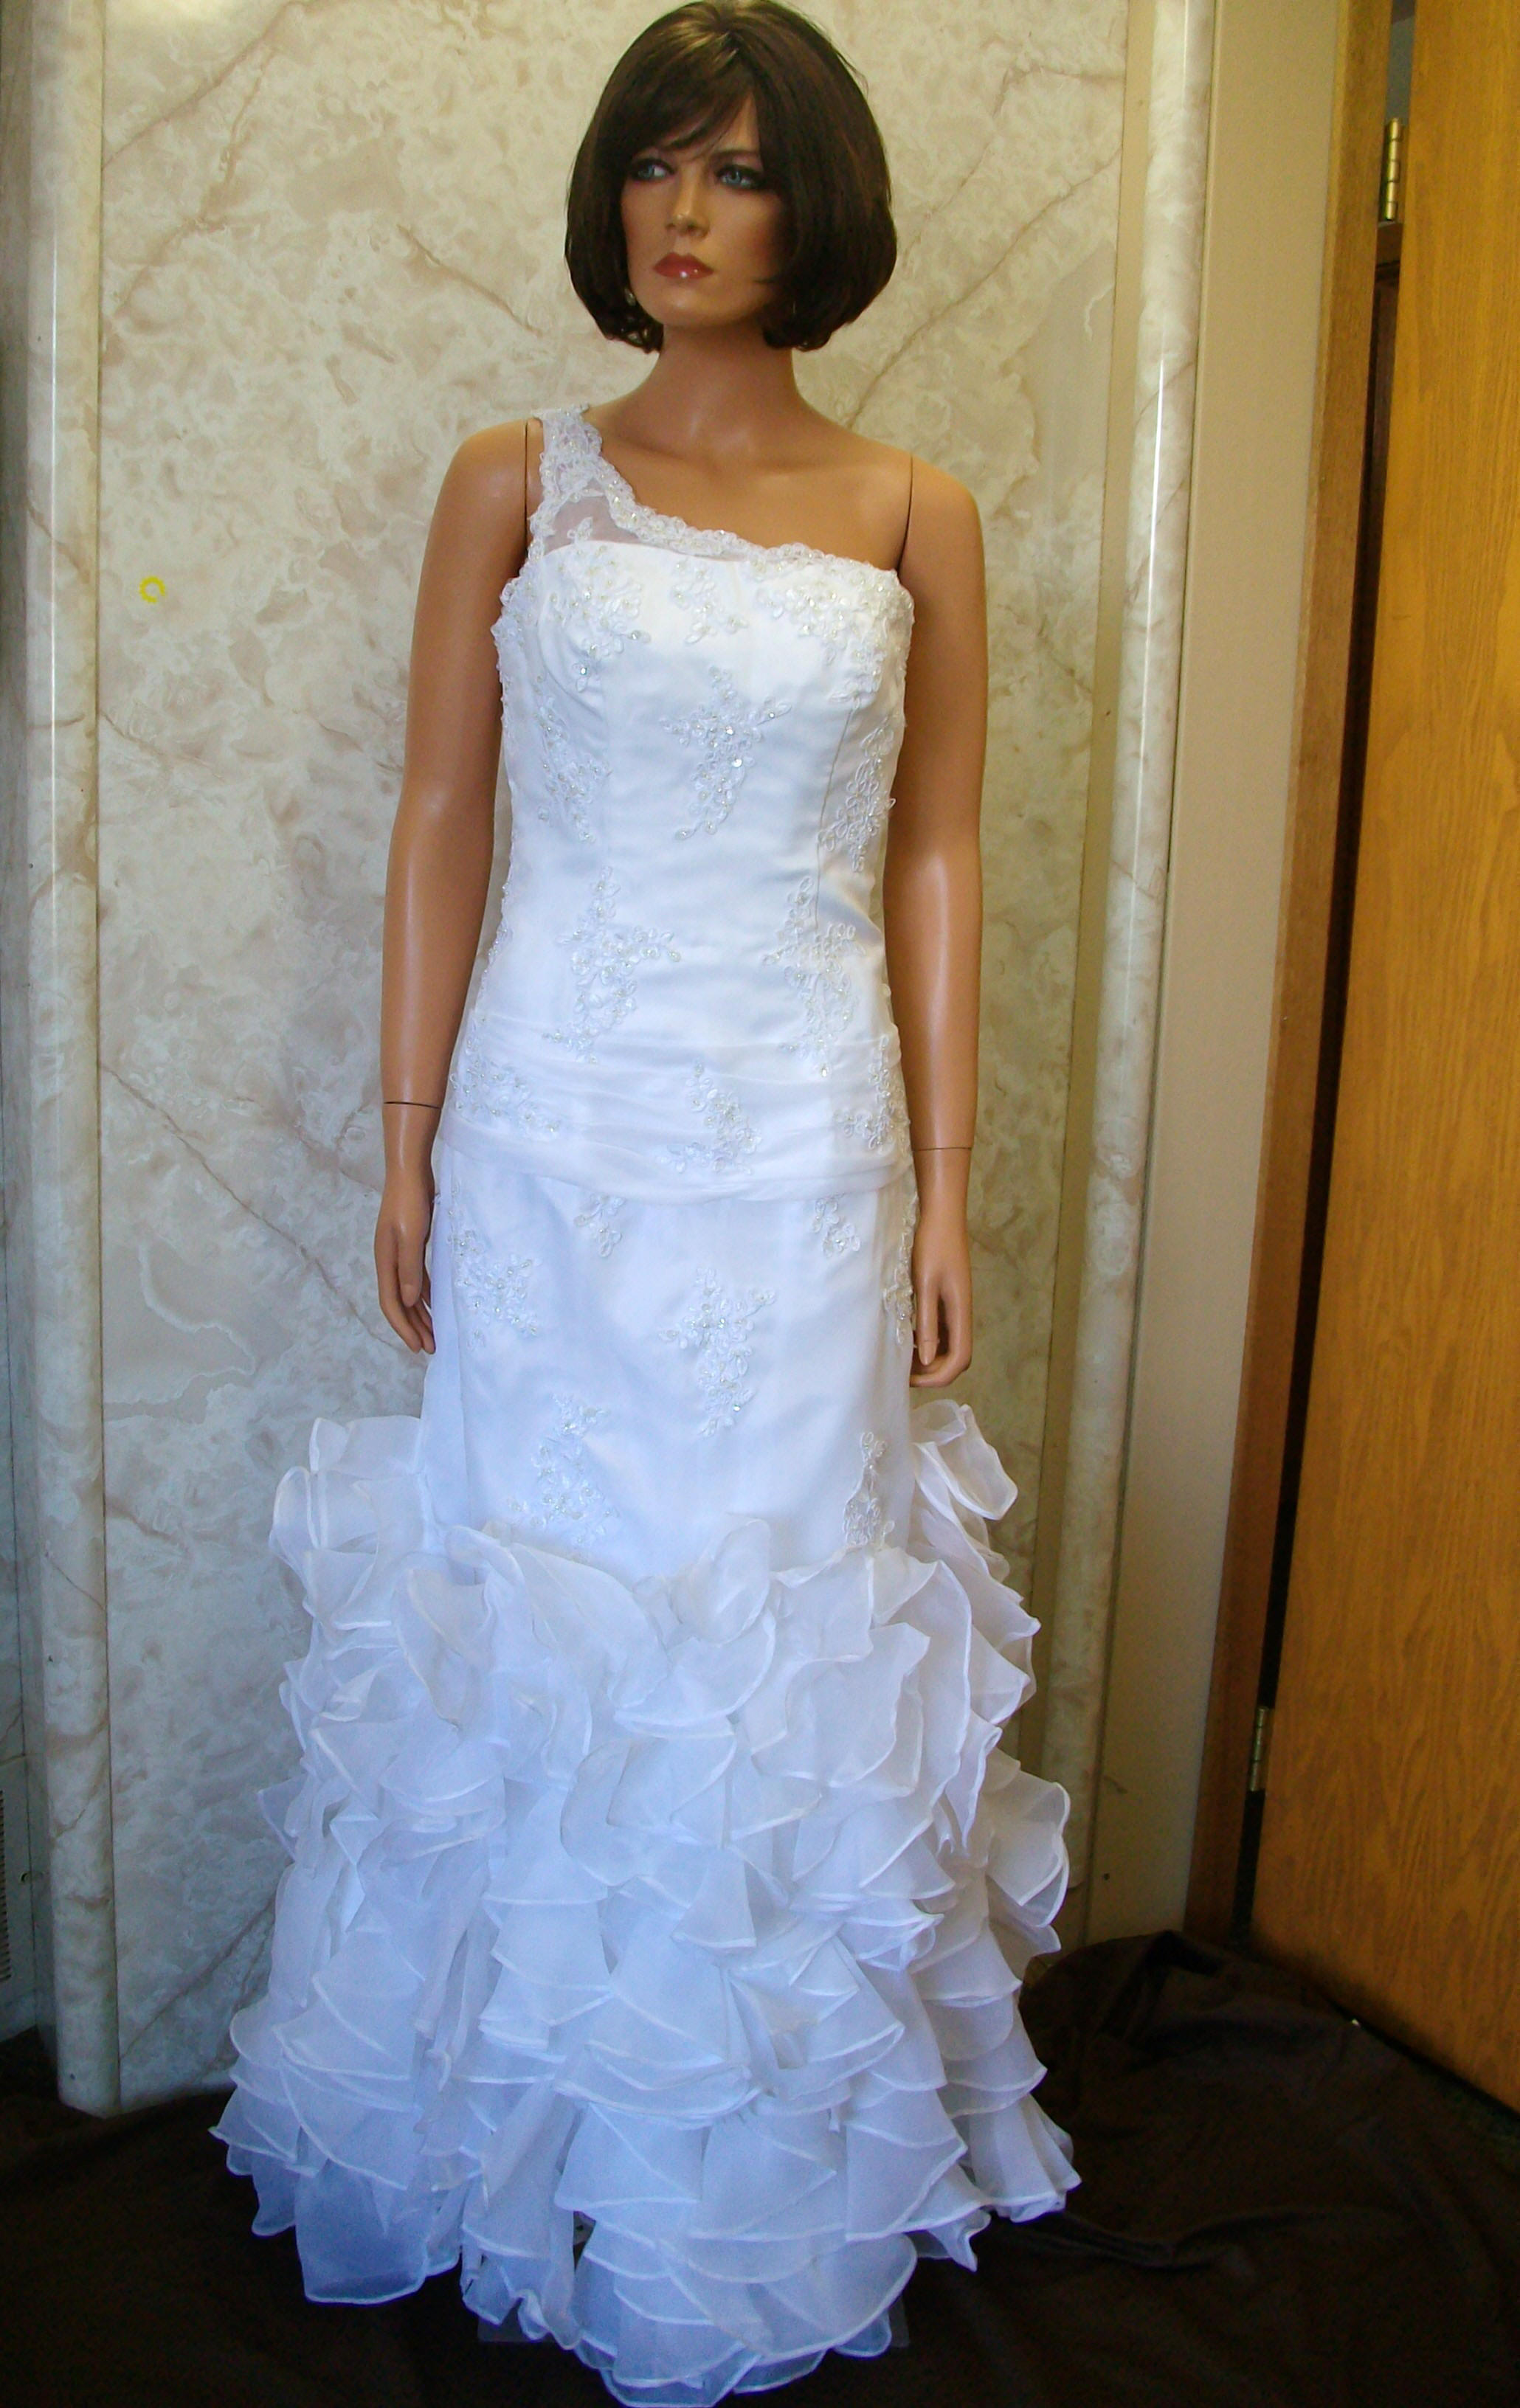 ruffled skirt wedding gown